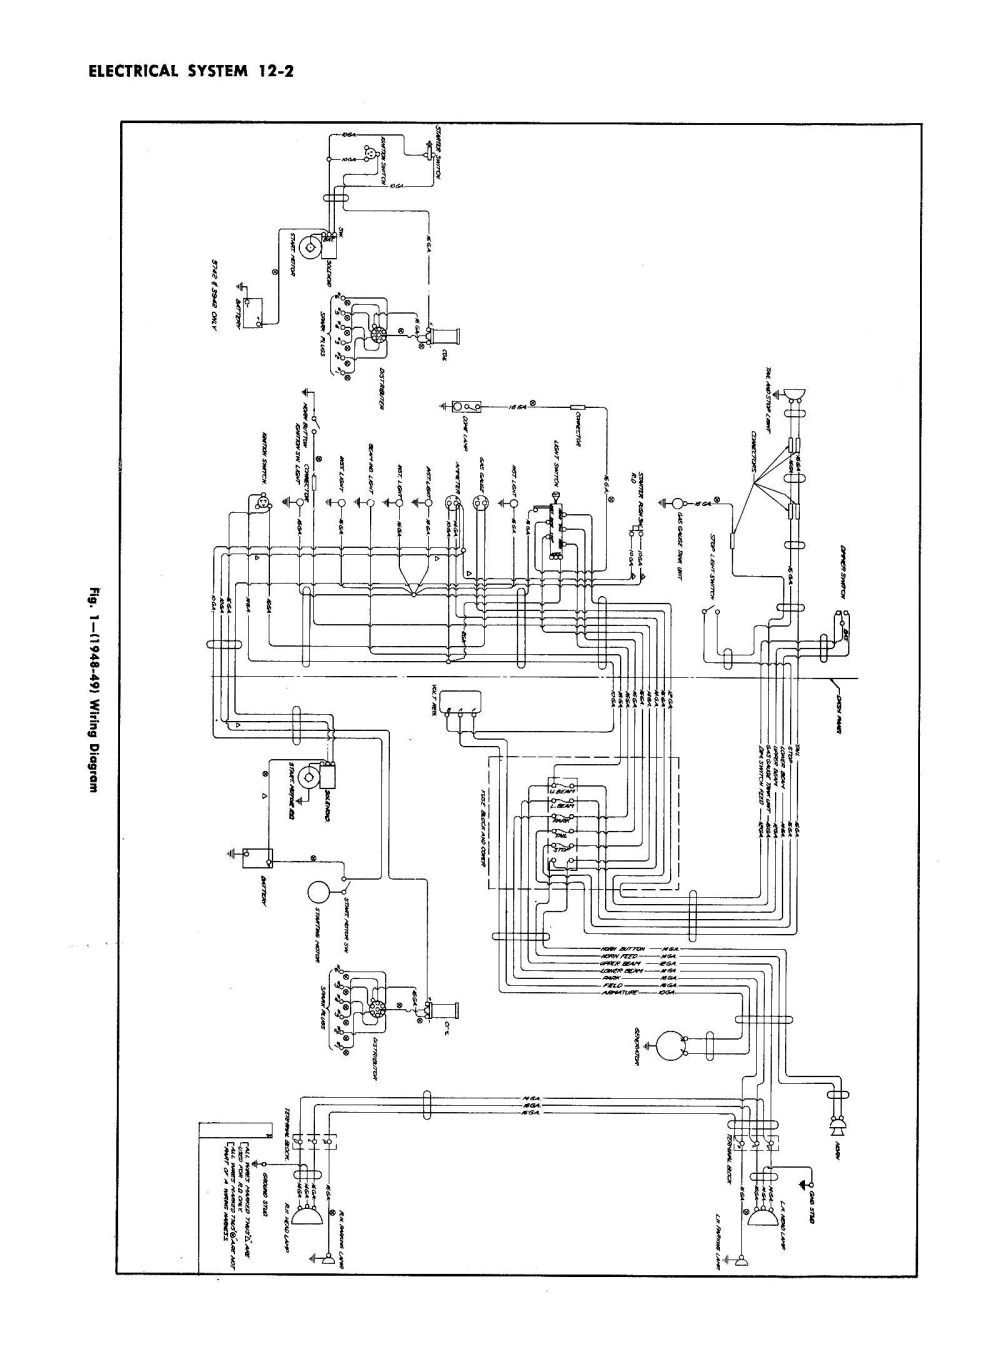 medium resolution of 1948 chevy wiring diagram wiring diagram third level rh 18 10 15 jacobwinterstein com electrical wiring diagrams for cars cadillac deville wiring diagram